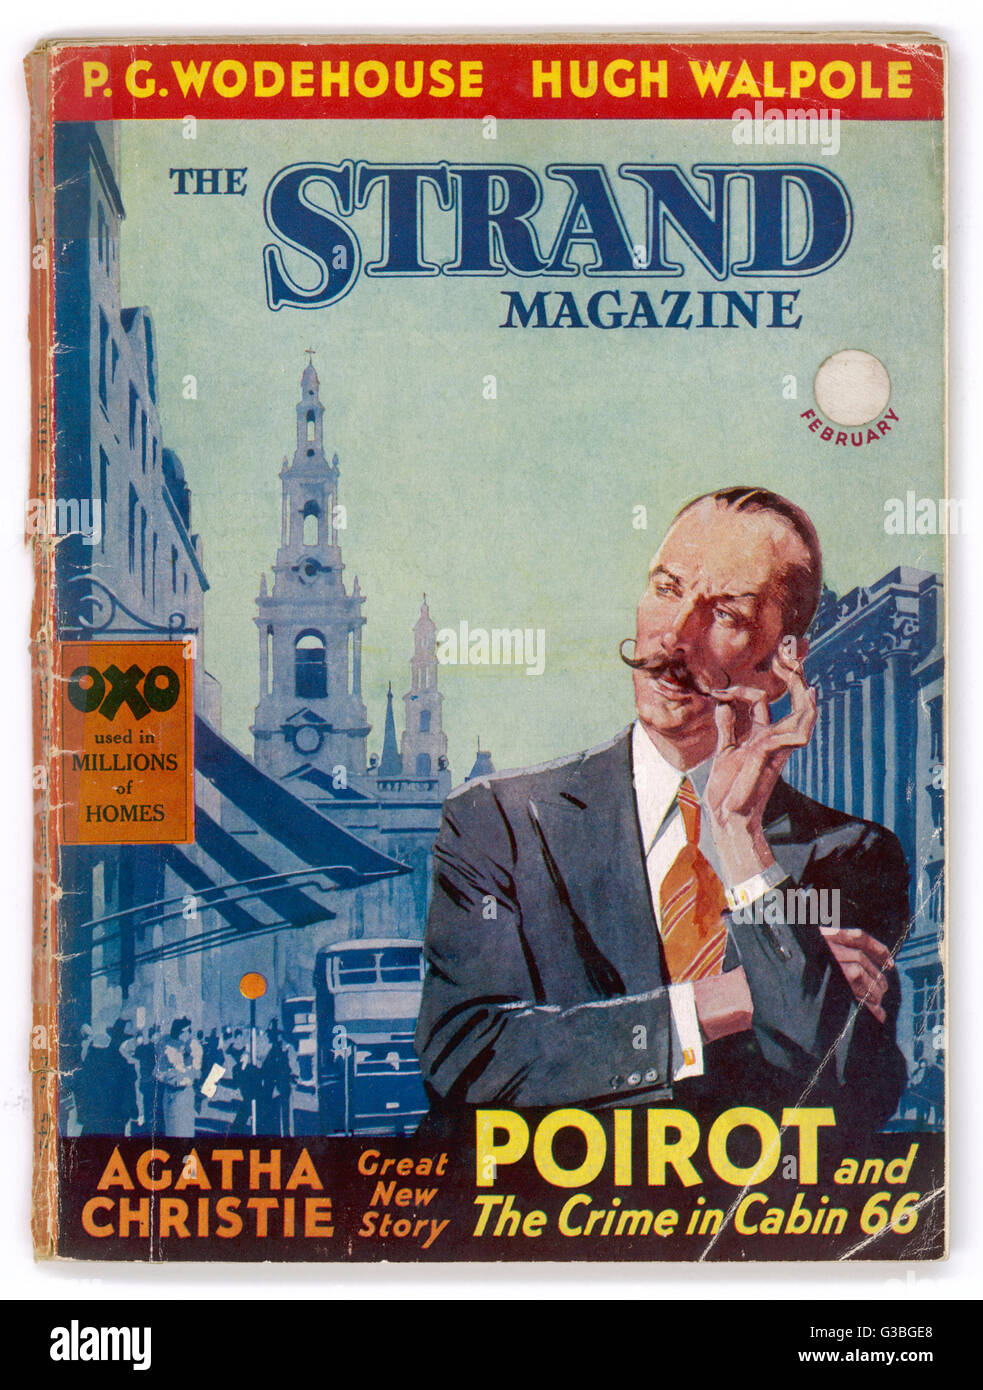 Belgian detective Hercule  Poirot, featured on the cover  of the Strand magazine containing  Christie's story - Stock Image